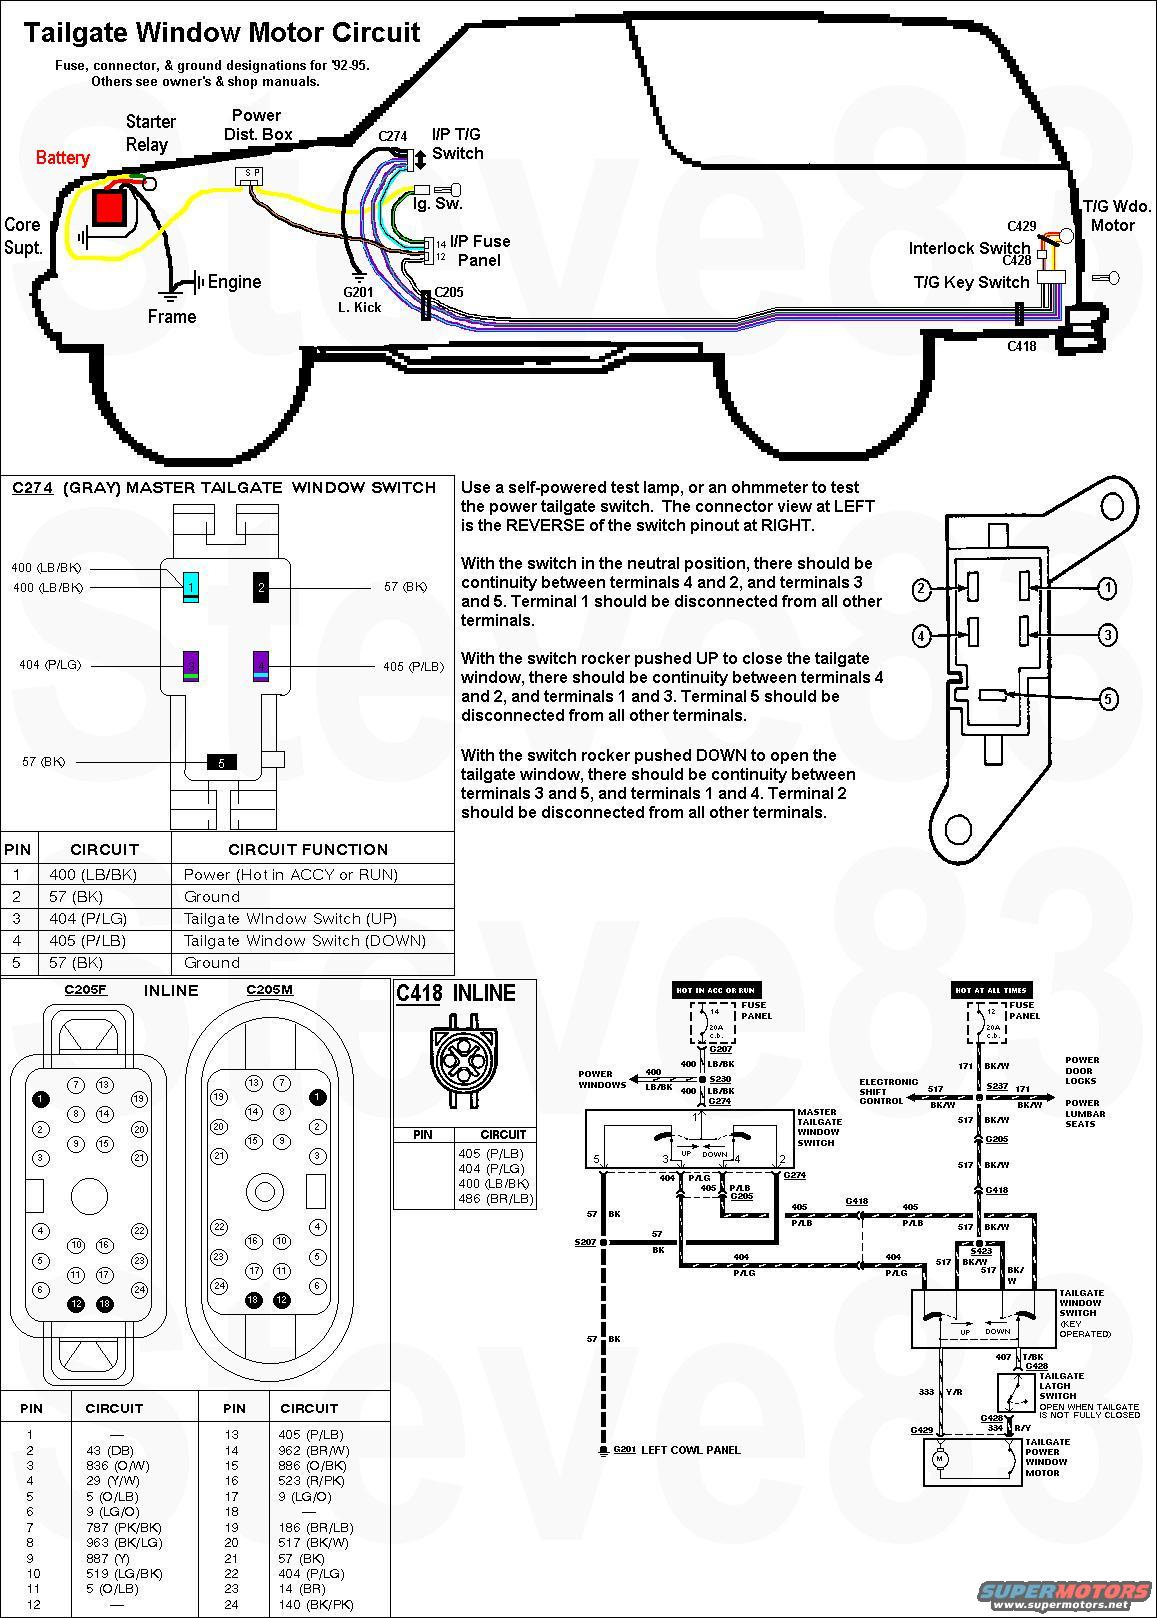 1993 ford ranger fuel pump wiring diagram ge shunt trip circuit breaker 1983 bronco tailgate tech picture | supermotors.net